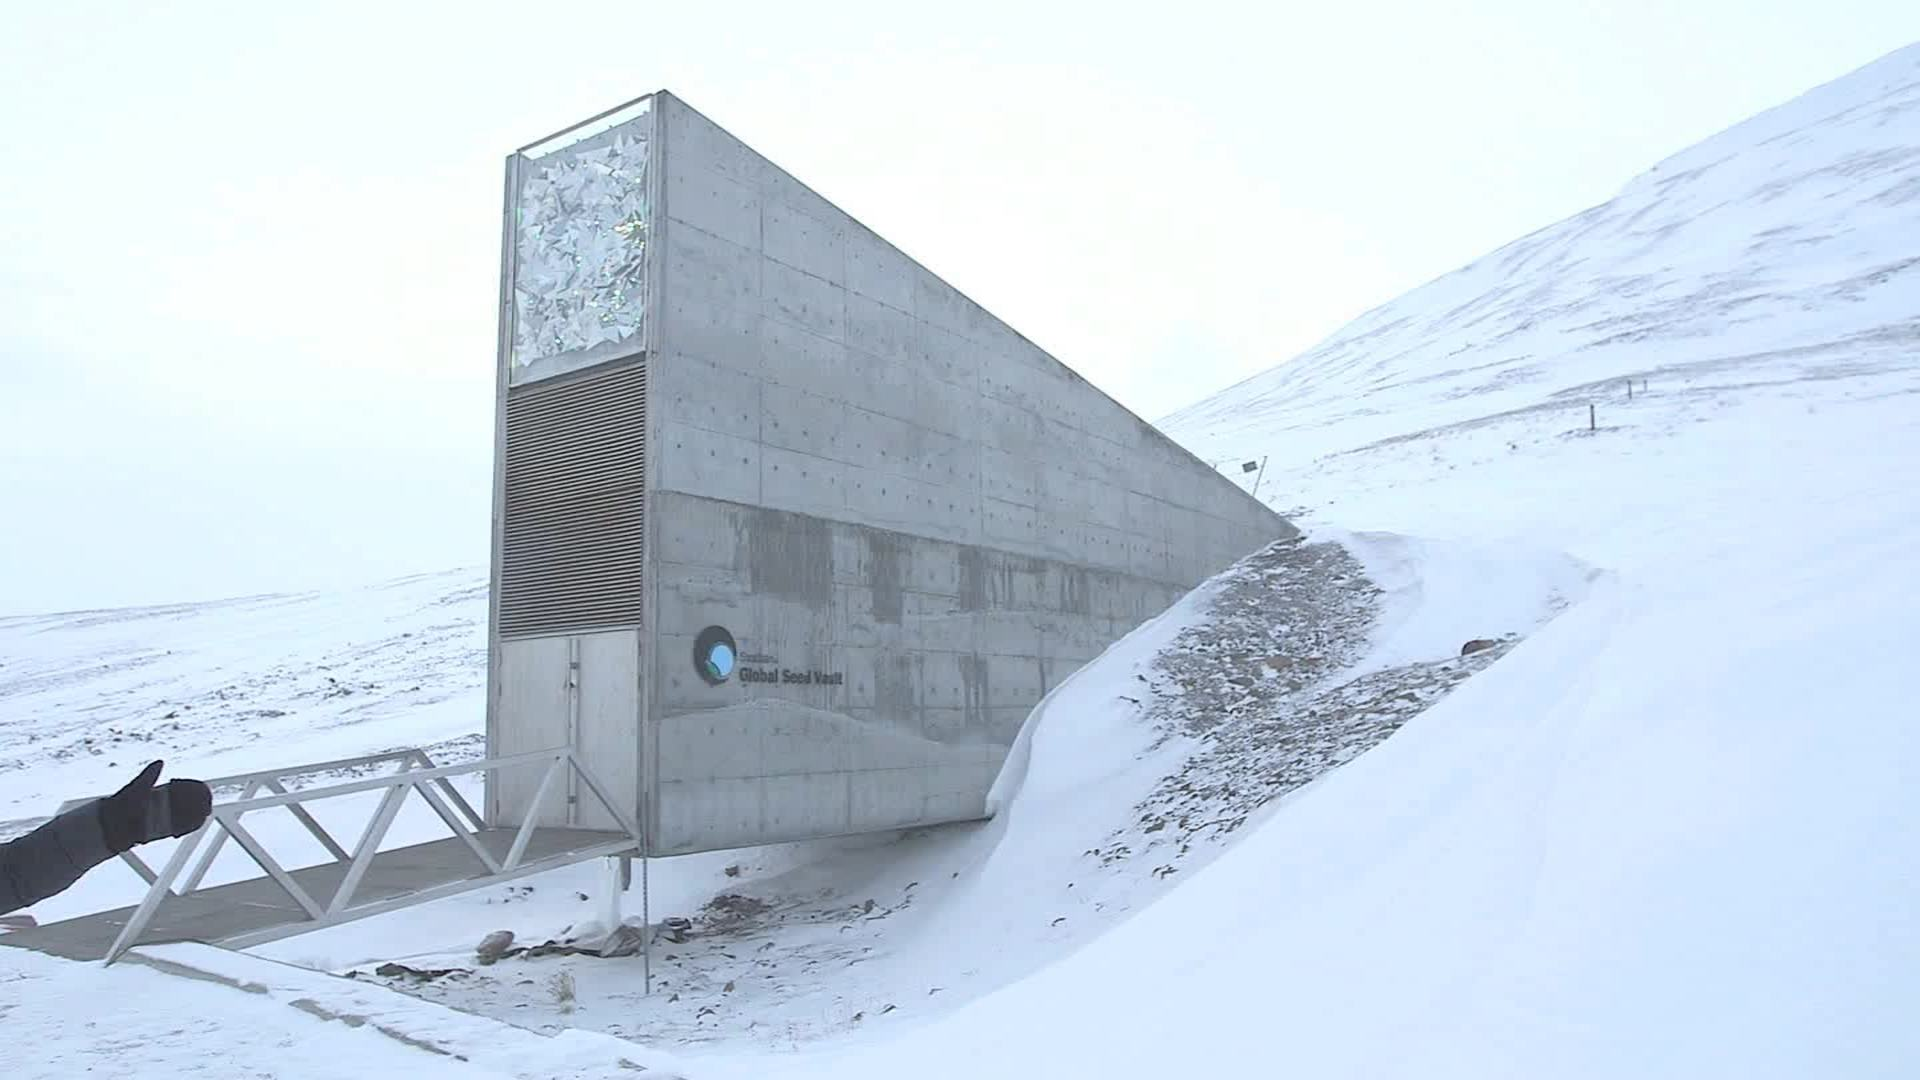 See Inside The Doomsday Seed Vault Cnn Video